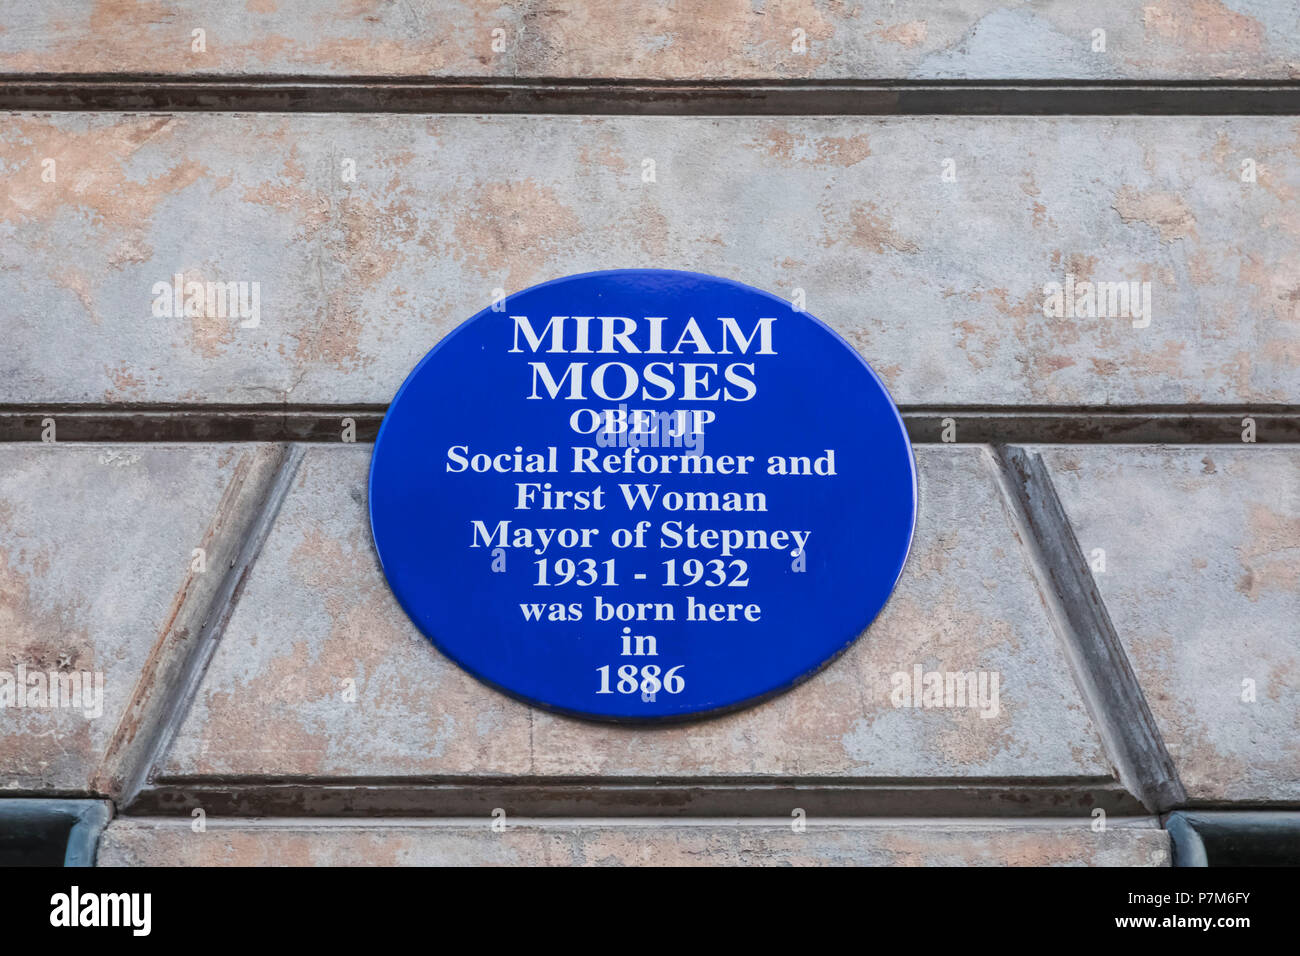 England, London, Shorditch, Spitafields, Blue Plaque on Birthplace of Miriam Moses OBE JP, The First Woman Mayor of Stepney - Stock Image